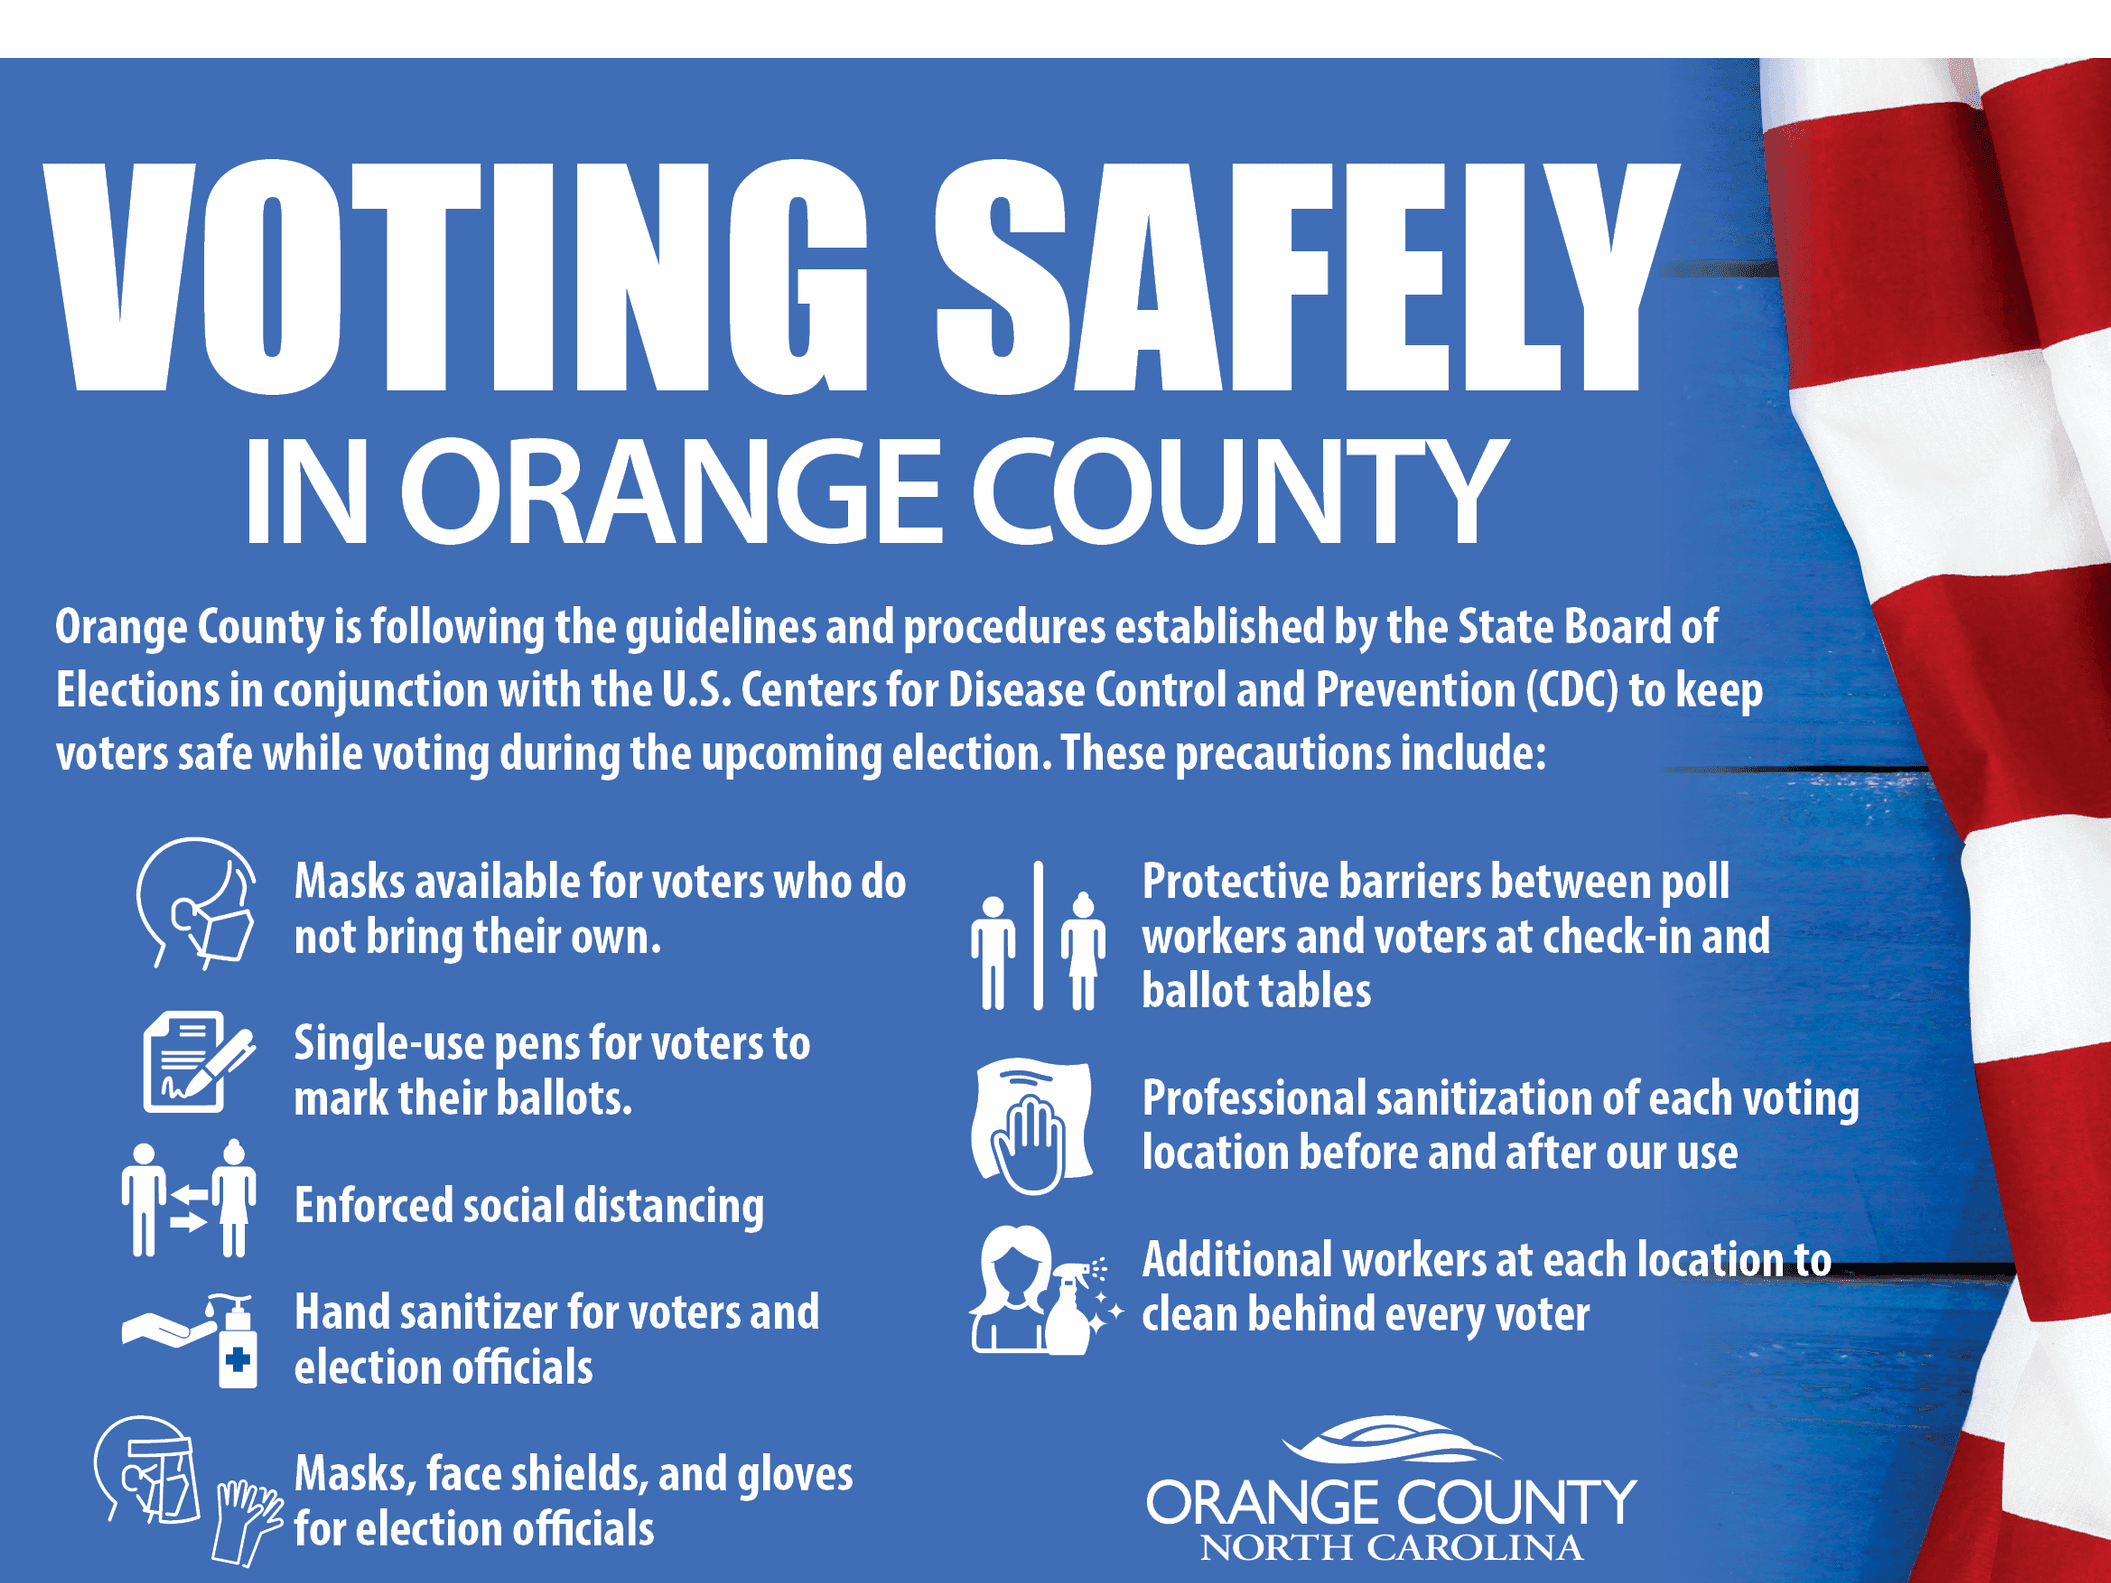 Voting Safely